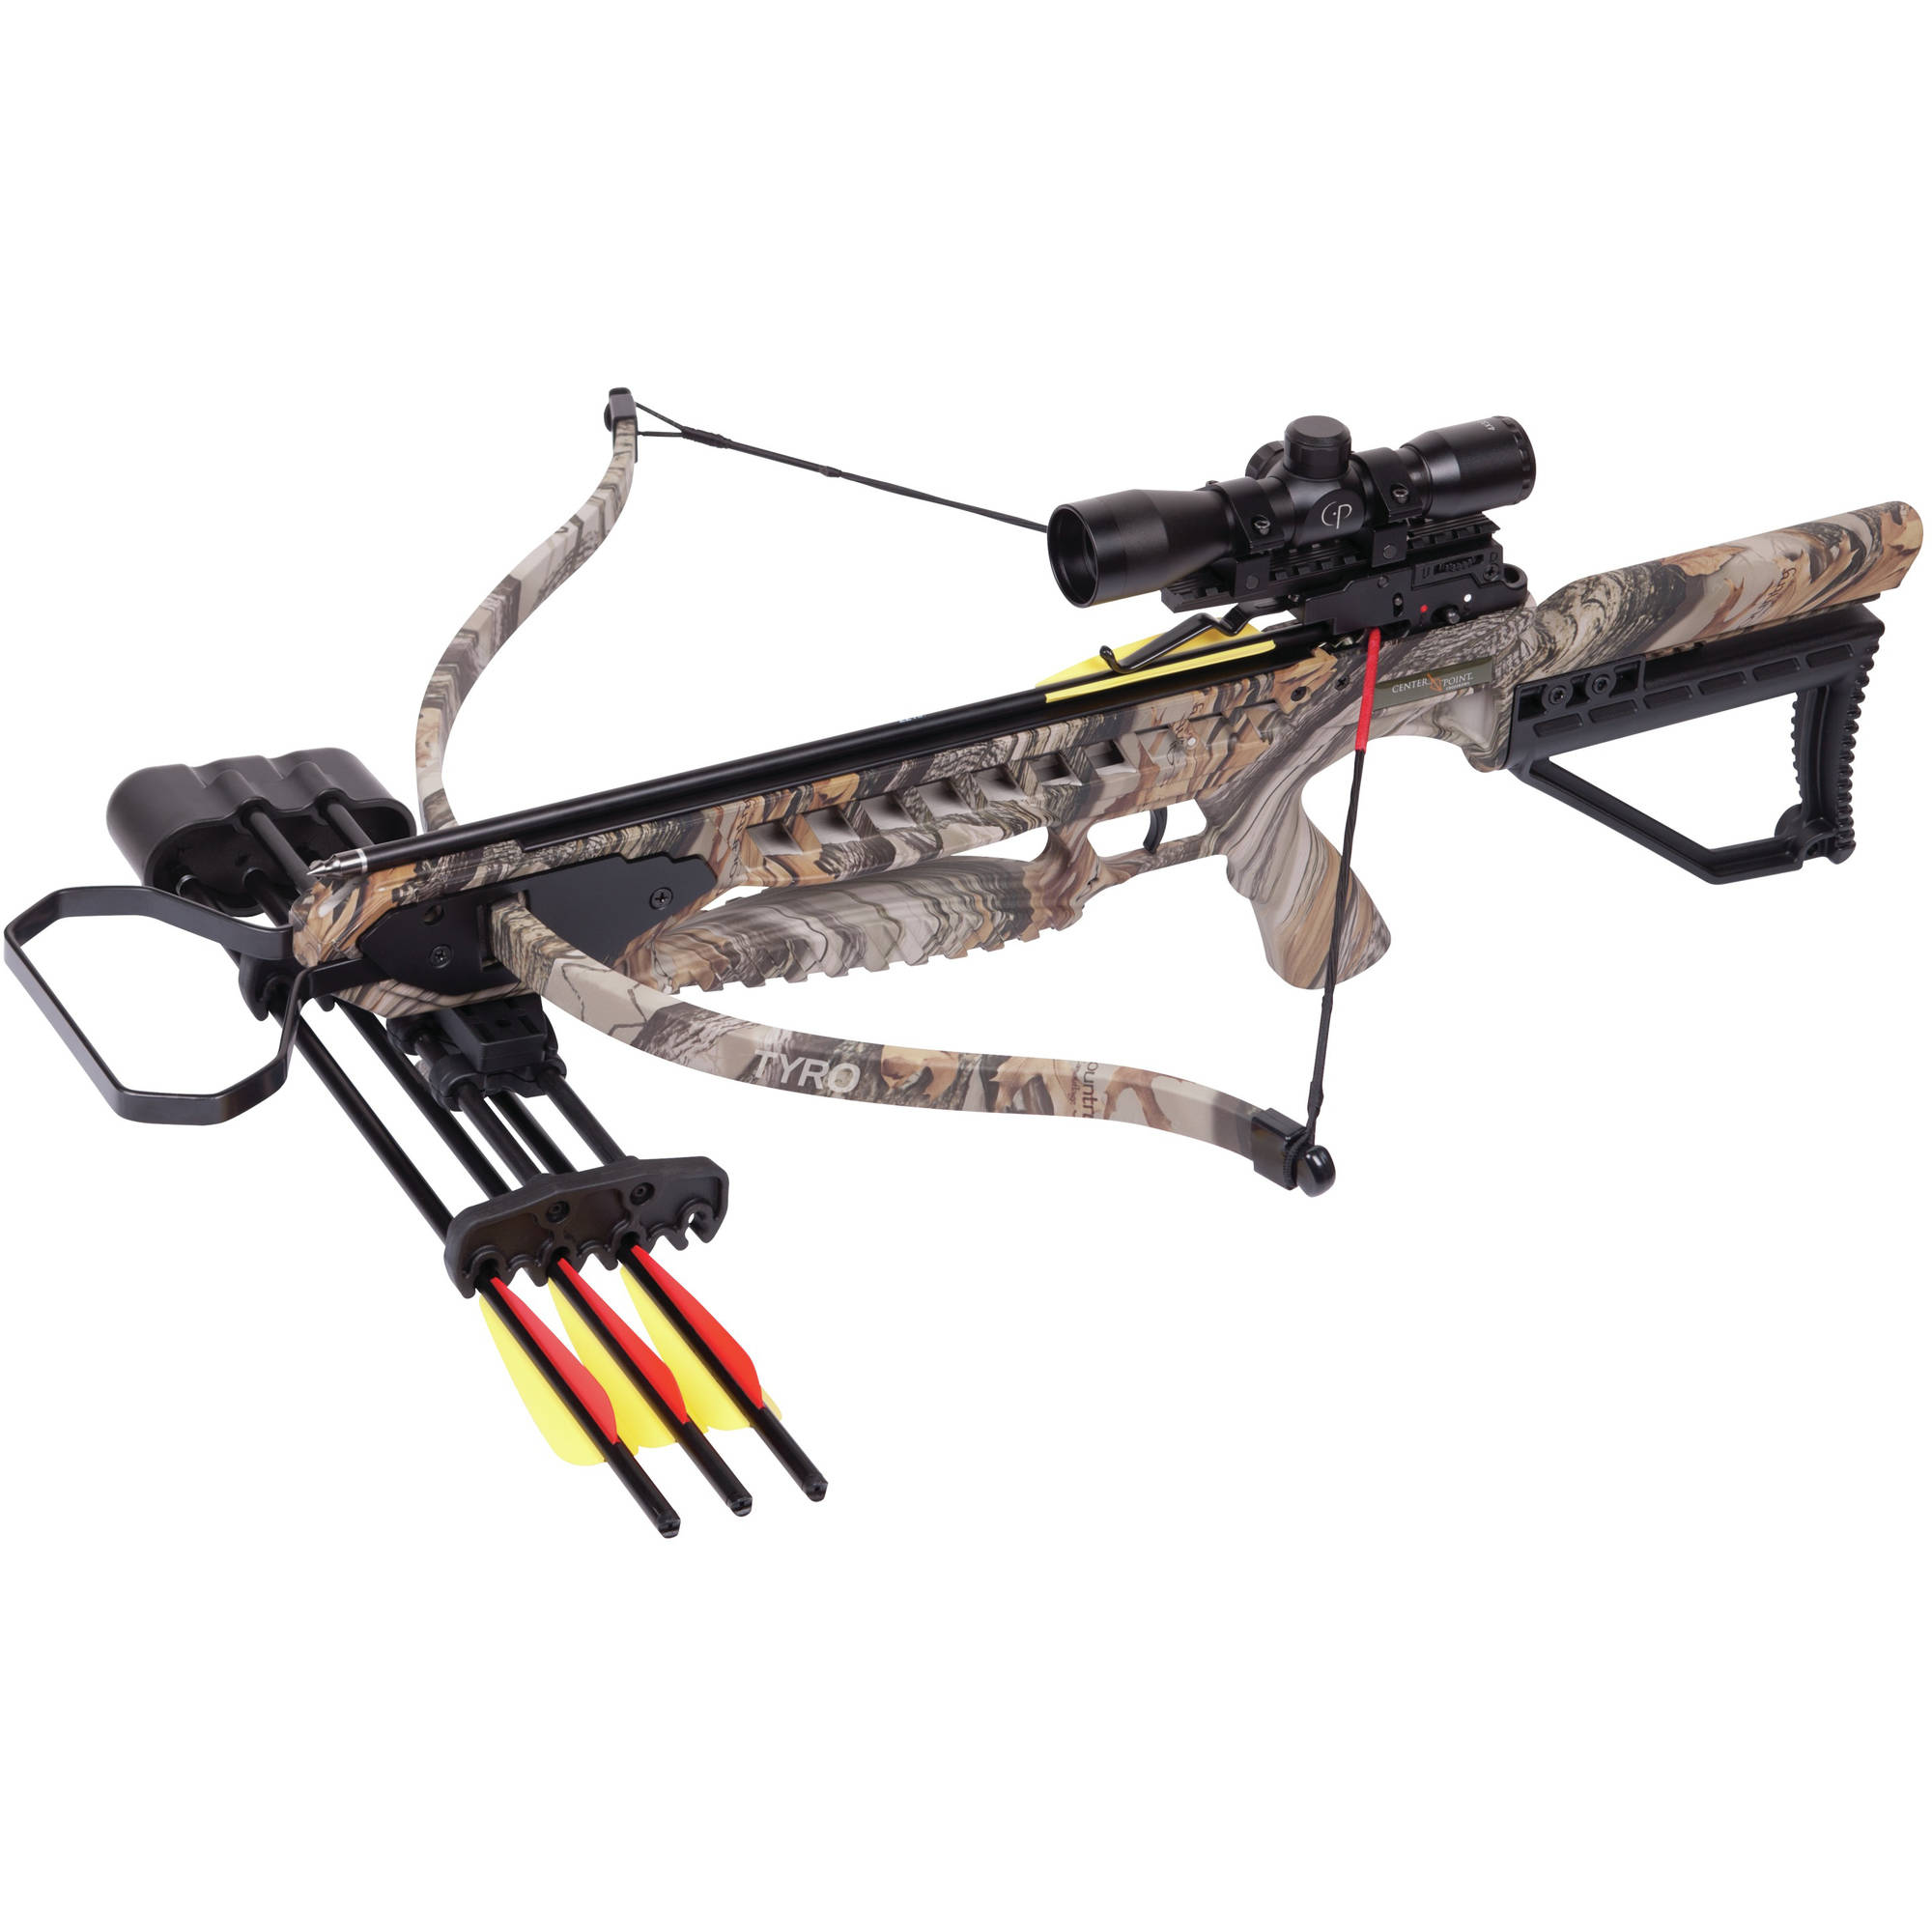 CenterPoint Tyro Recurve Crossbow, Camo by Crosman